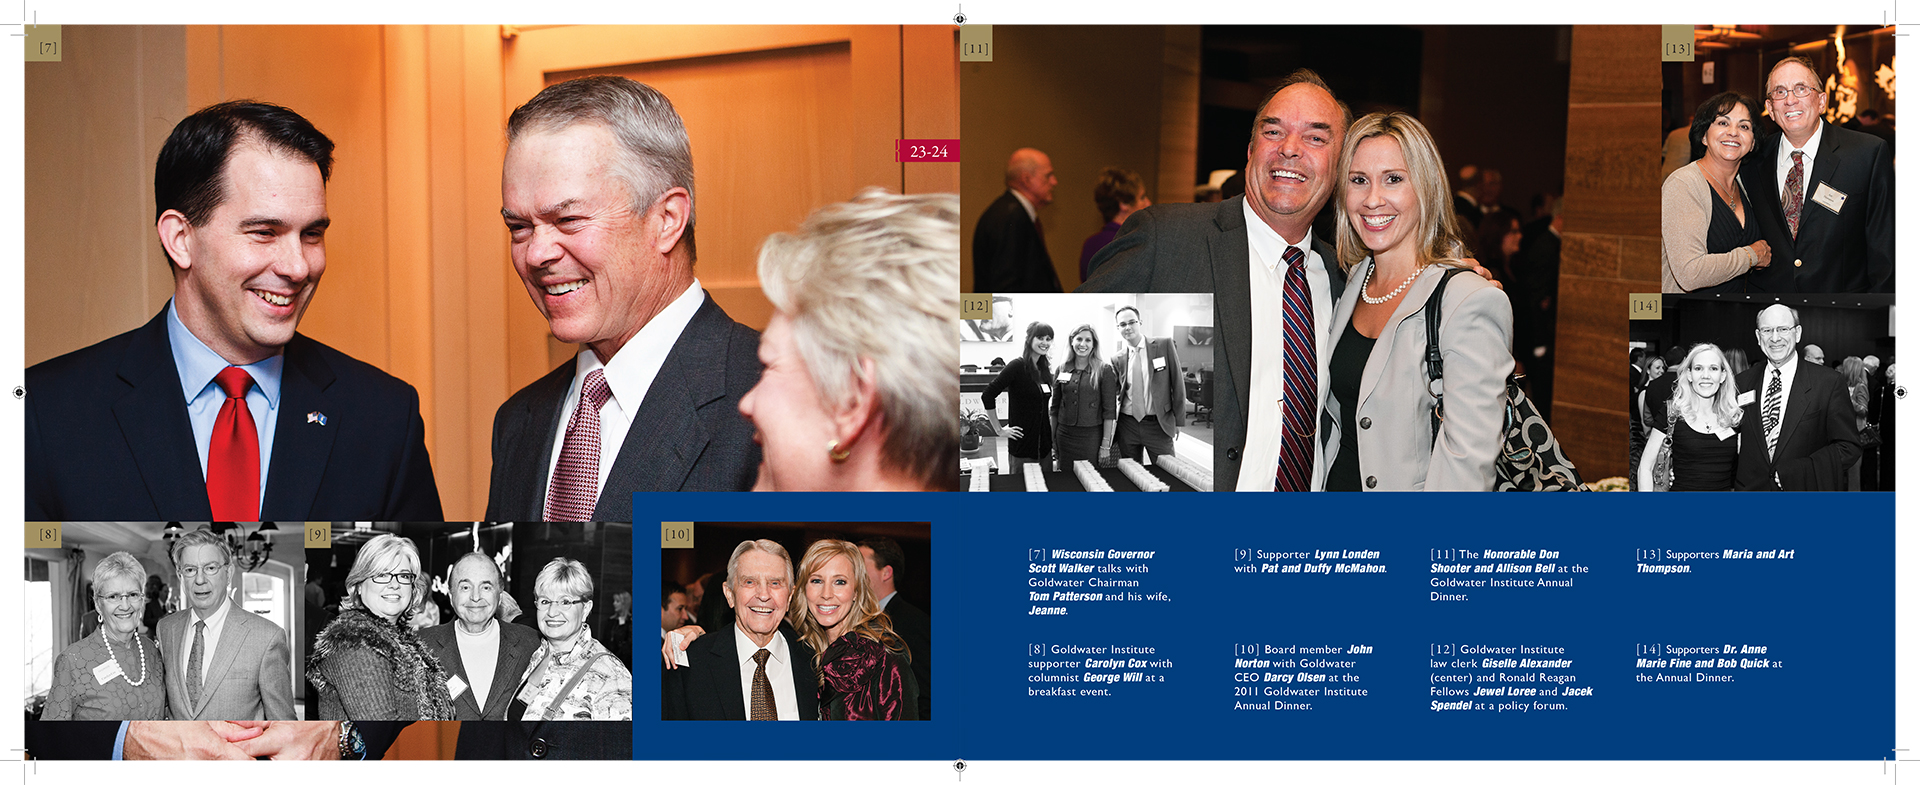 Goldwater Institute Annual Report Design